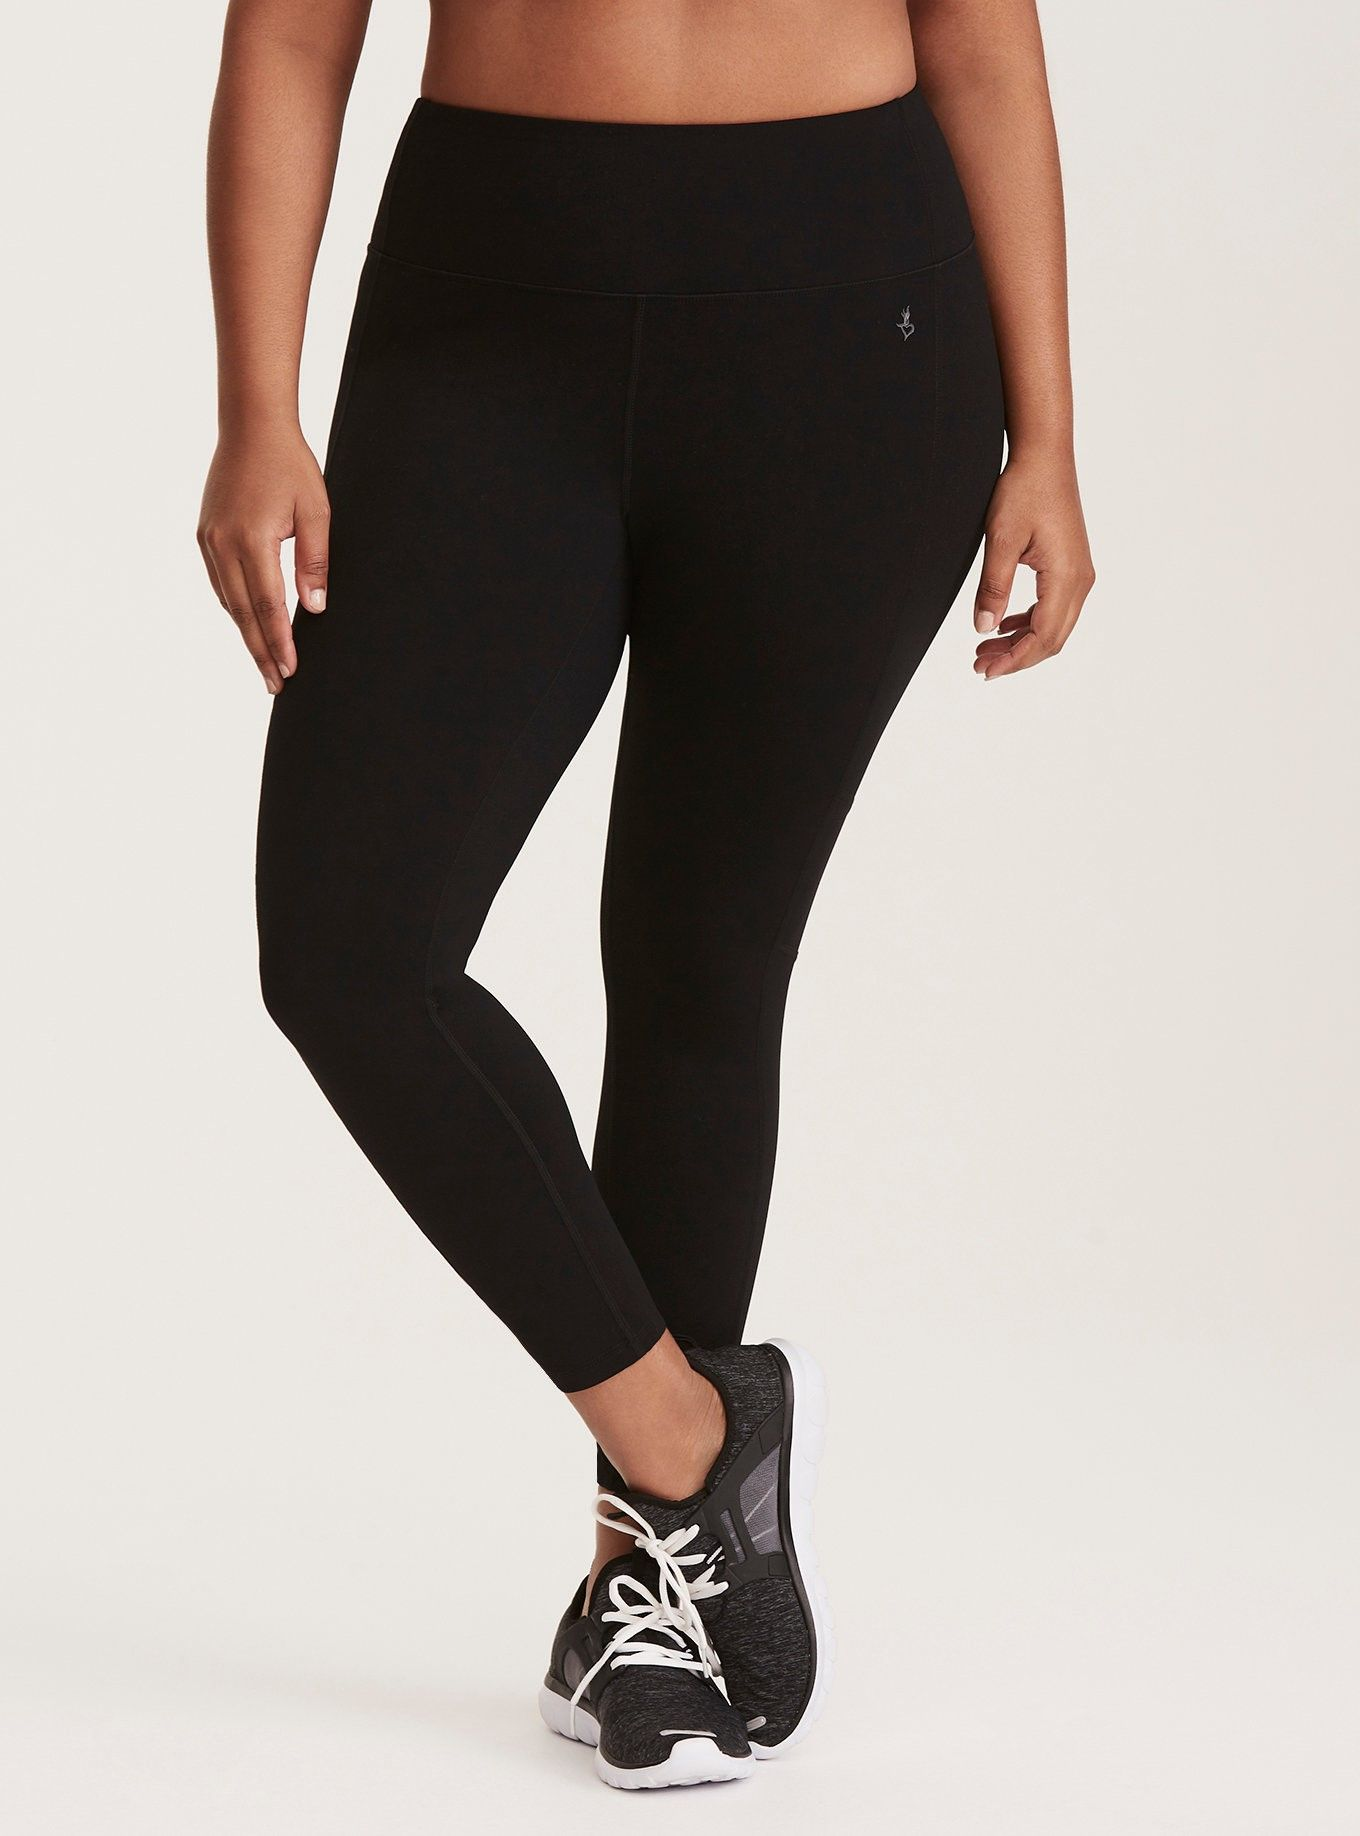 d691866dc4b37 Black Cropped Active Legging - A 4-way stretch crop legging is designed  with wicking technology to keep you cool and dry, while flat seams improve  your ...